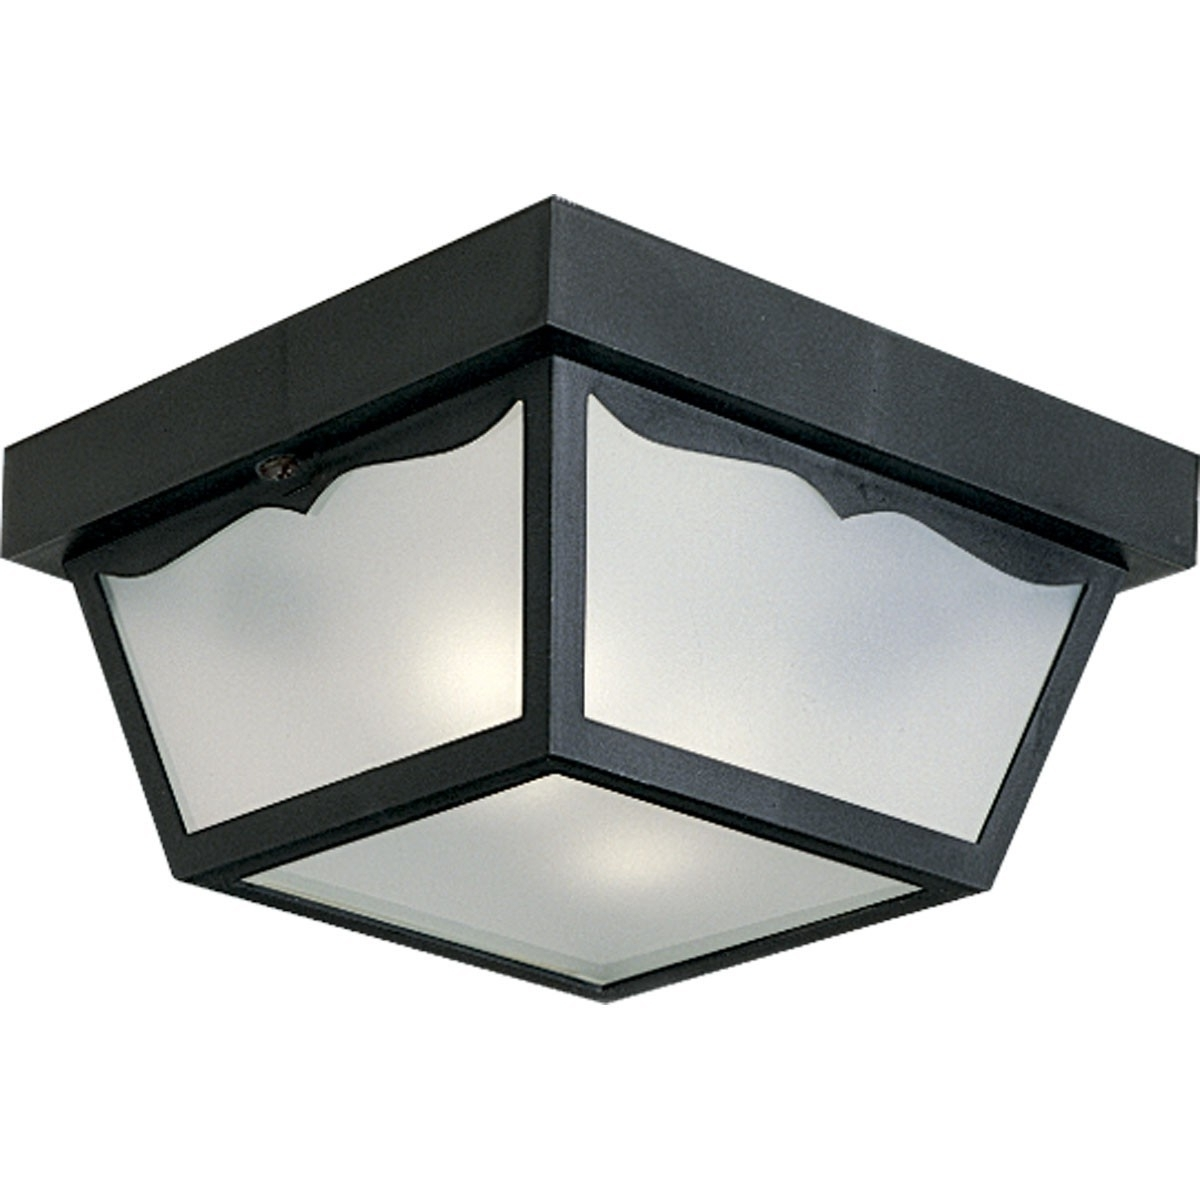 Preferred Mount Flush Bathroom Ceiling Lights Overhead Popular Outdoor Popular For Round Outdoor Ceiling Lights (View 15 of 20)